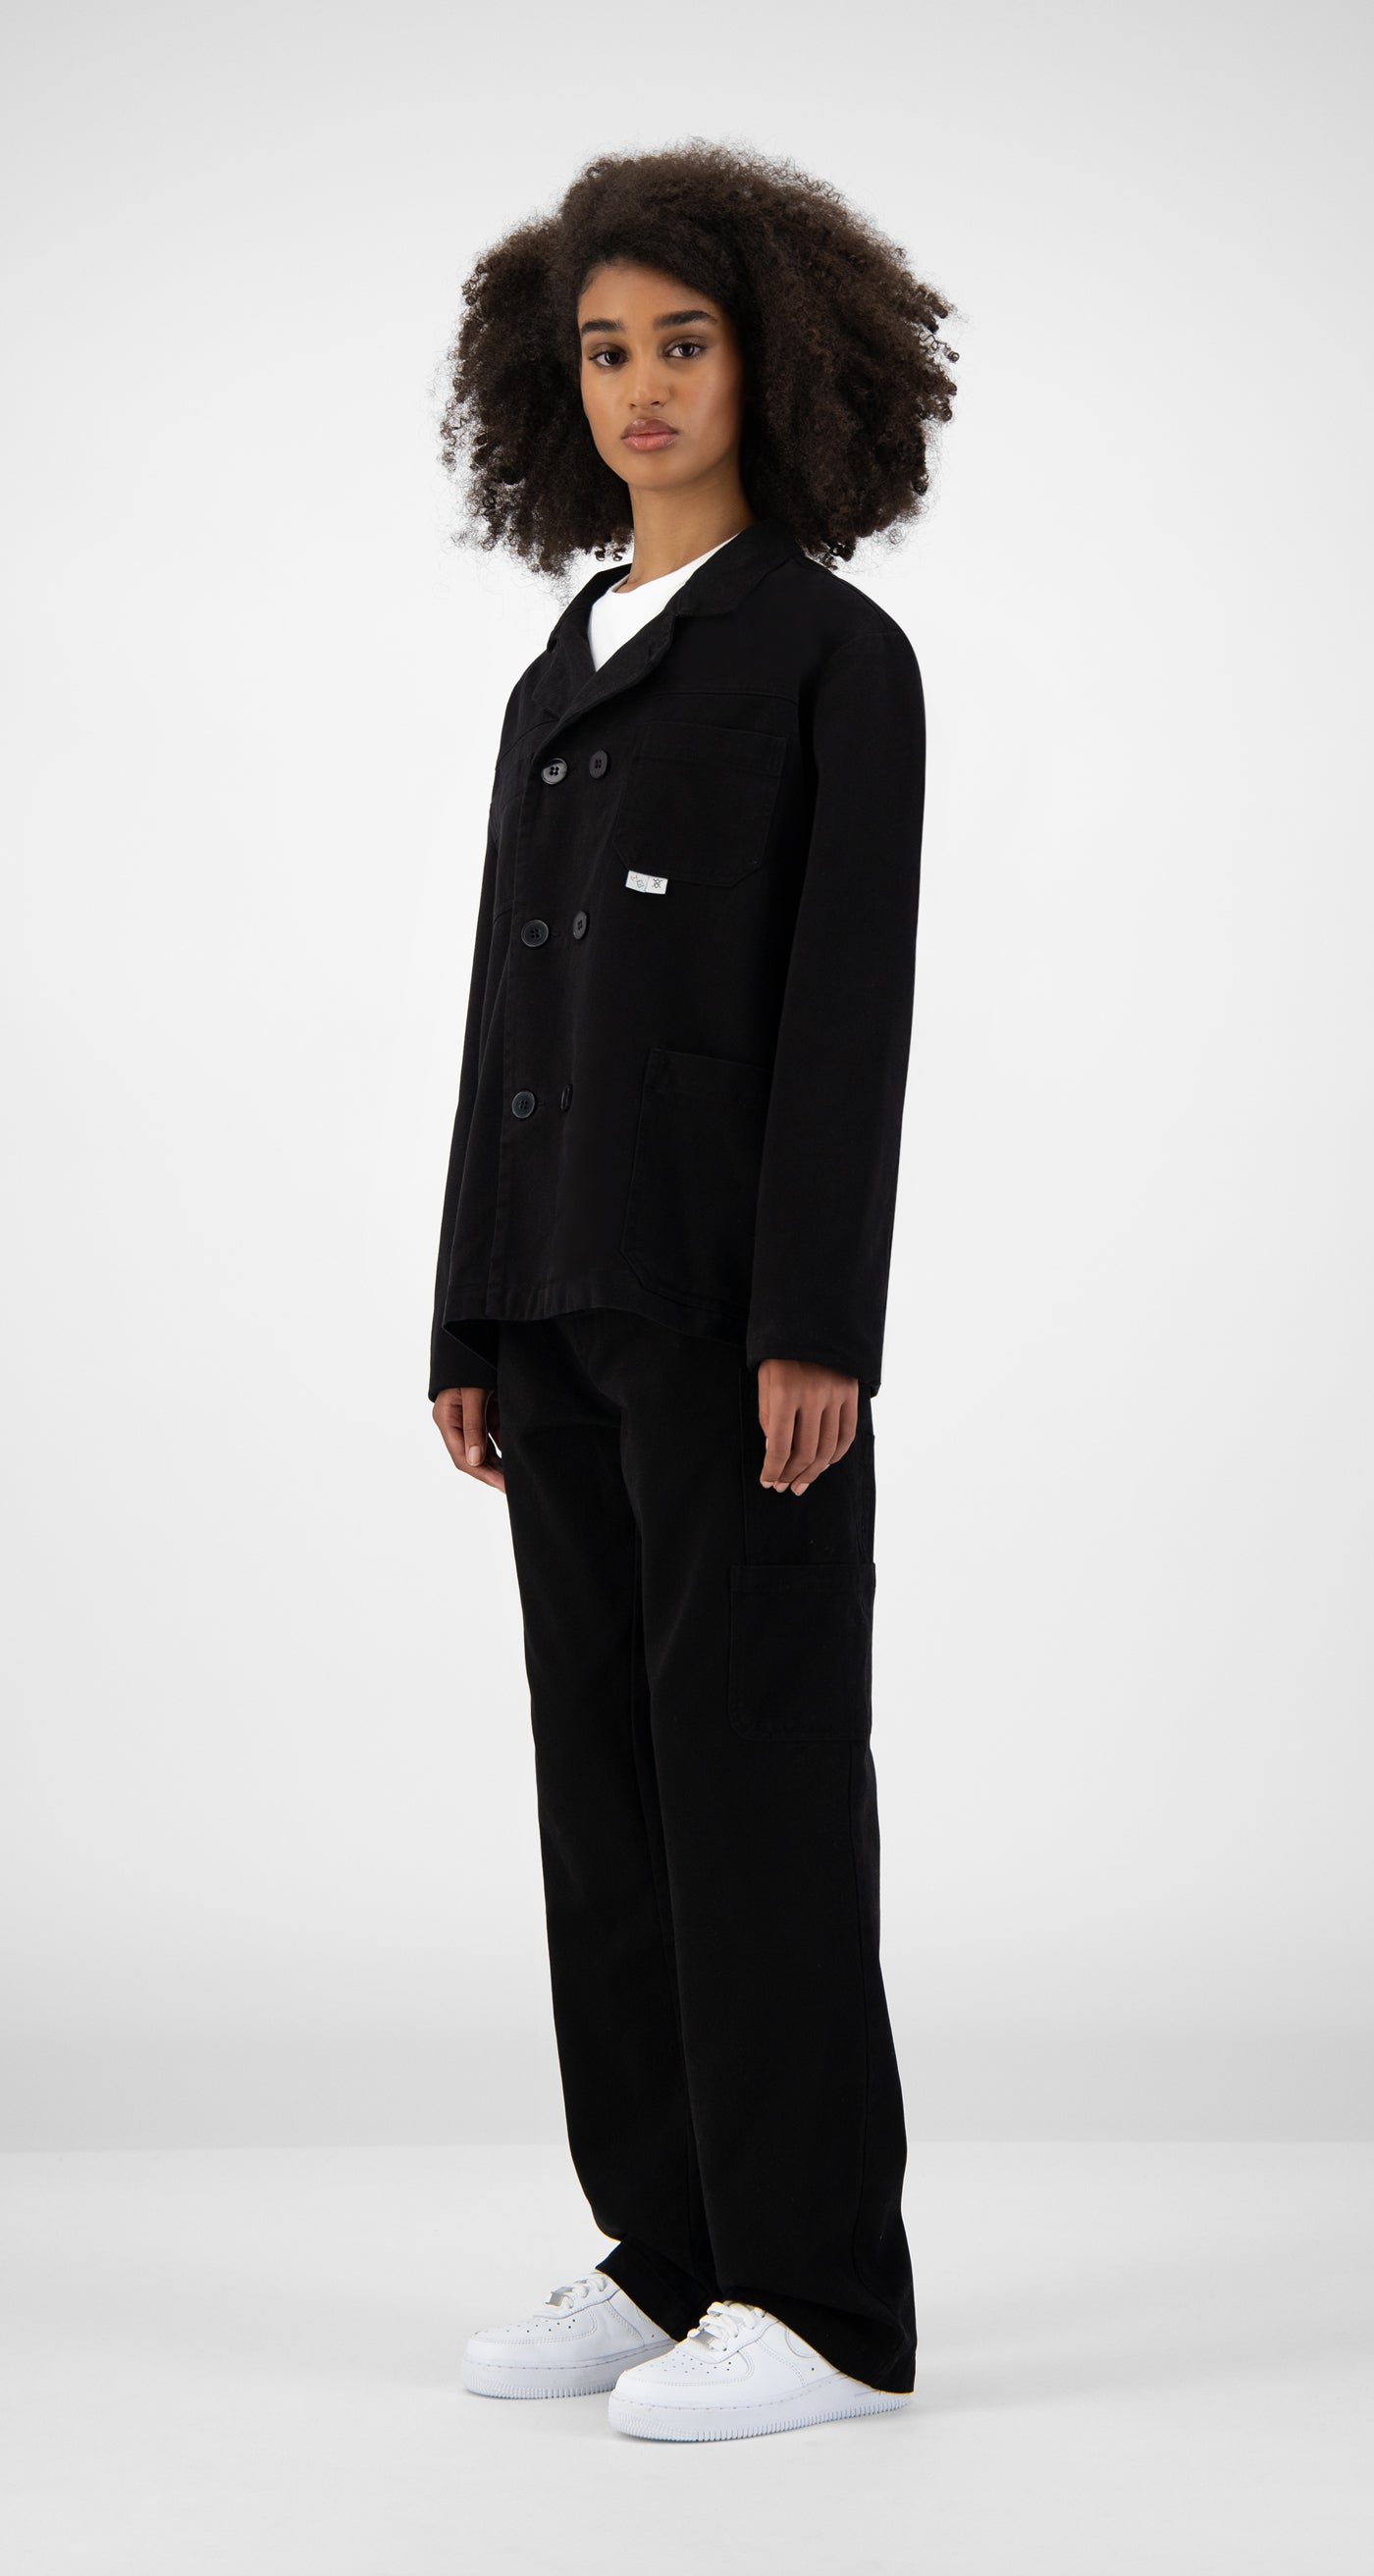 Daily Paper x Bonne Suits - Black Suit - Women